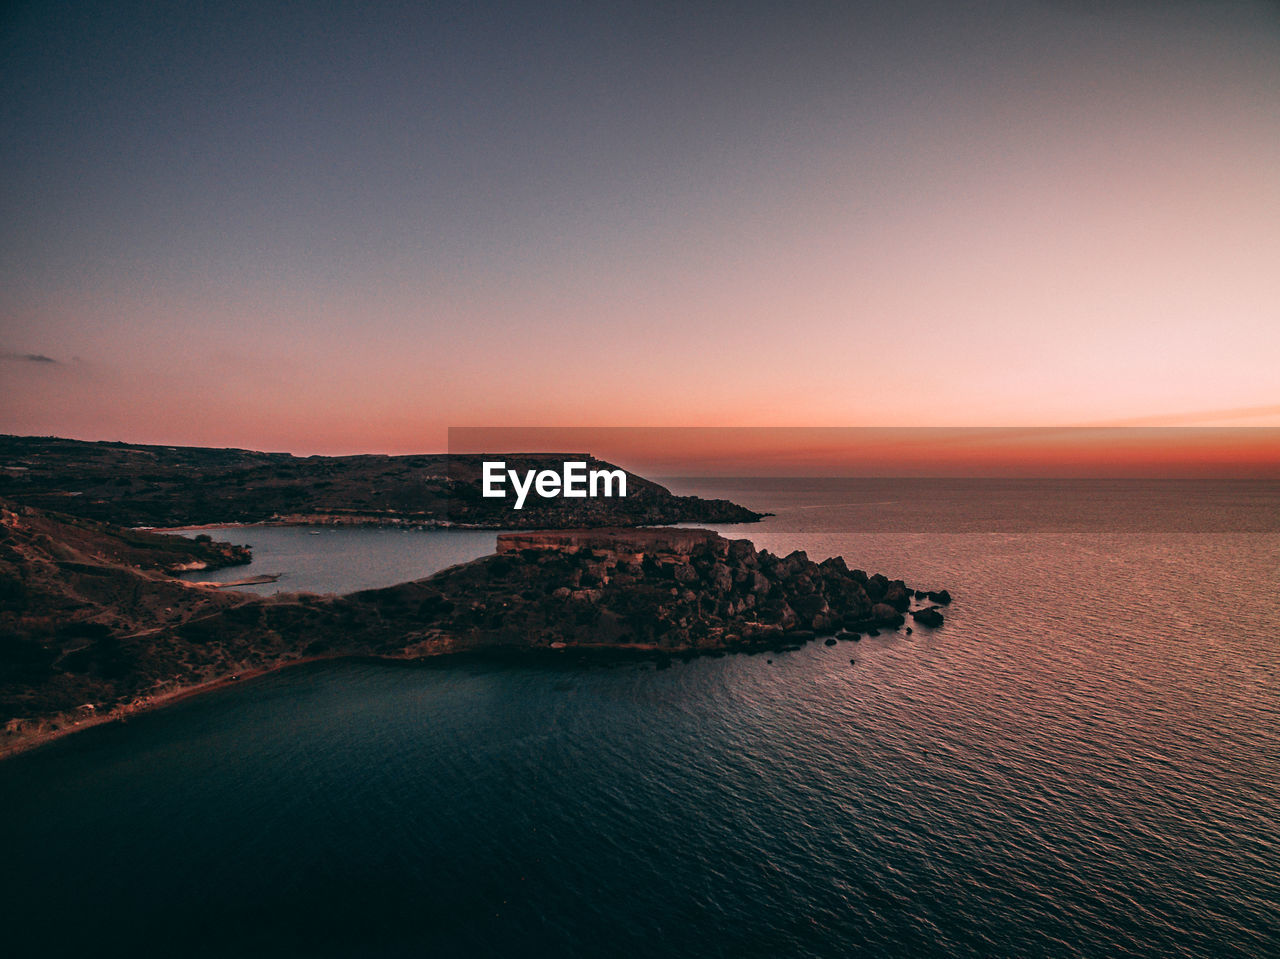 sea, water, sky, beauty in nature, scenics - nature, sunset, tranquil scene, tranquility, copy space, no people, nature, waterfront, idyllic, horizon over water, horizon, orange color, land, clear sky, architecture, outdoors